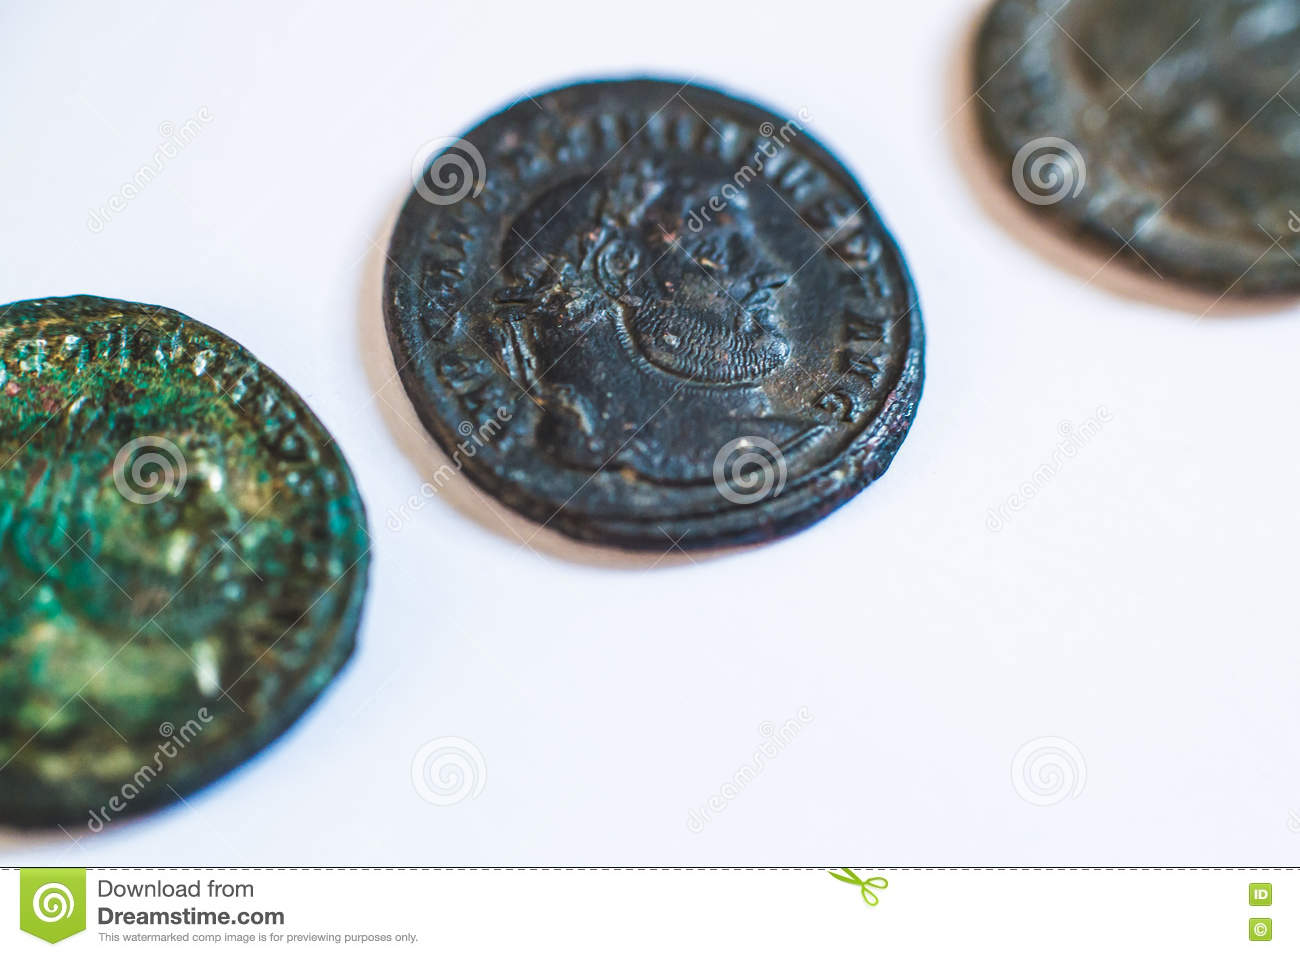 Roman Coins  Old Coins  Rare  Historical  Stock Image - Image of